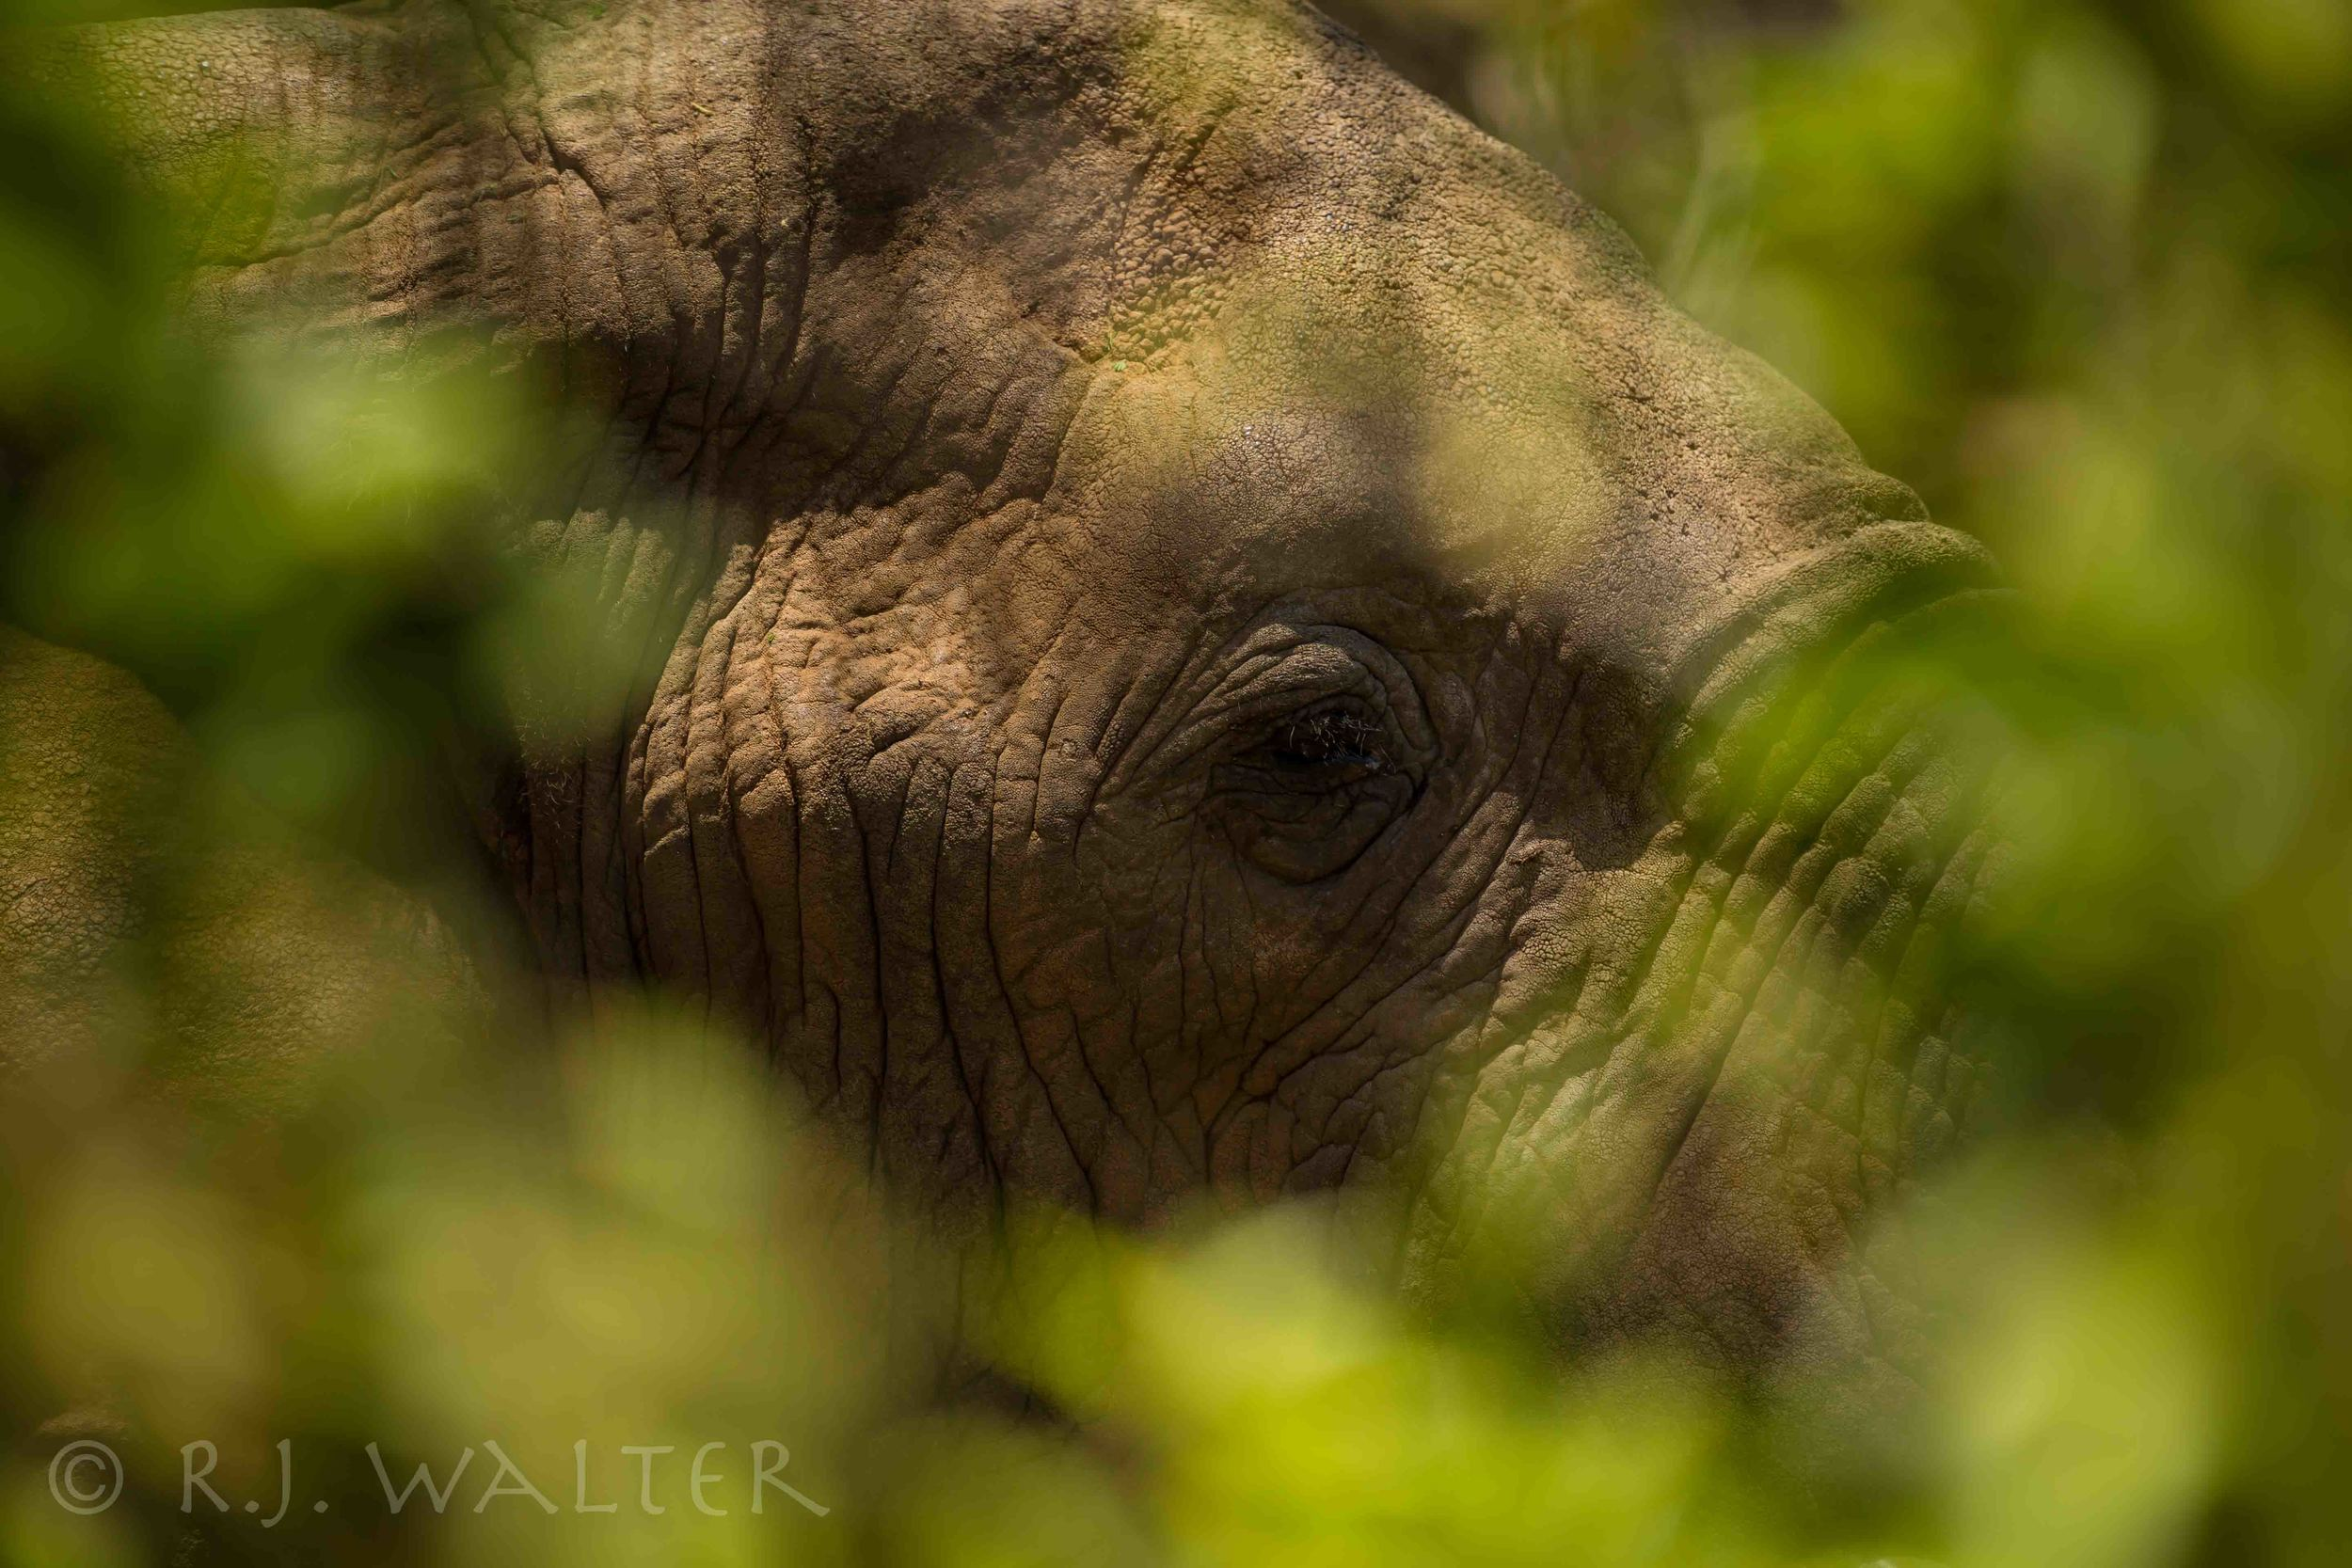 RJWalter_Save The Elephants_Samburu, Kenya_March 2015-5357.jpg